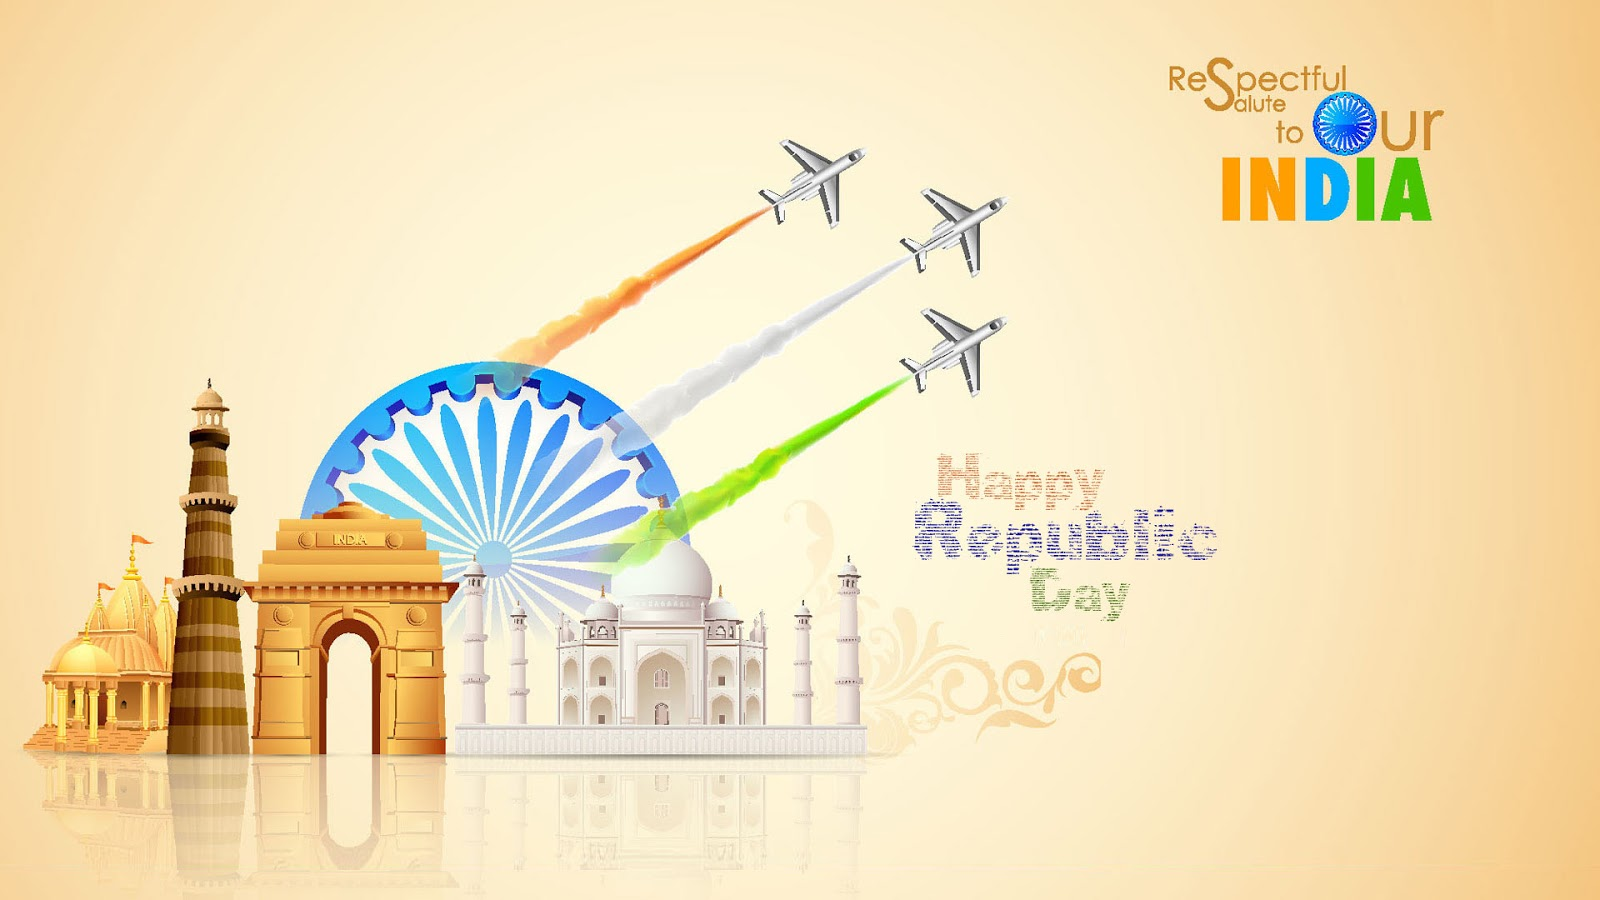 Happy republic day 2016 wishes images facebook cover photos happy republic day 2016 wishes images facebook cover photos quotes poems atozwishes m4hsunfo